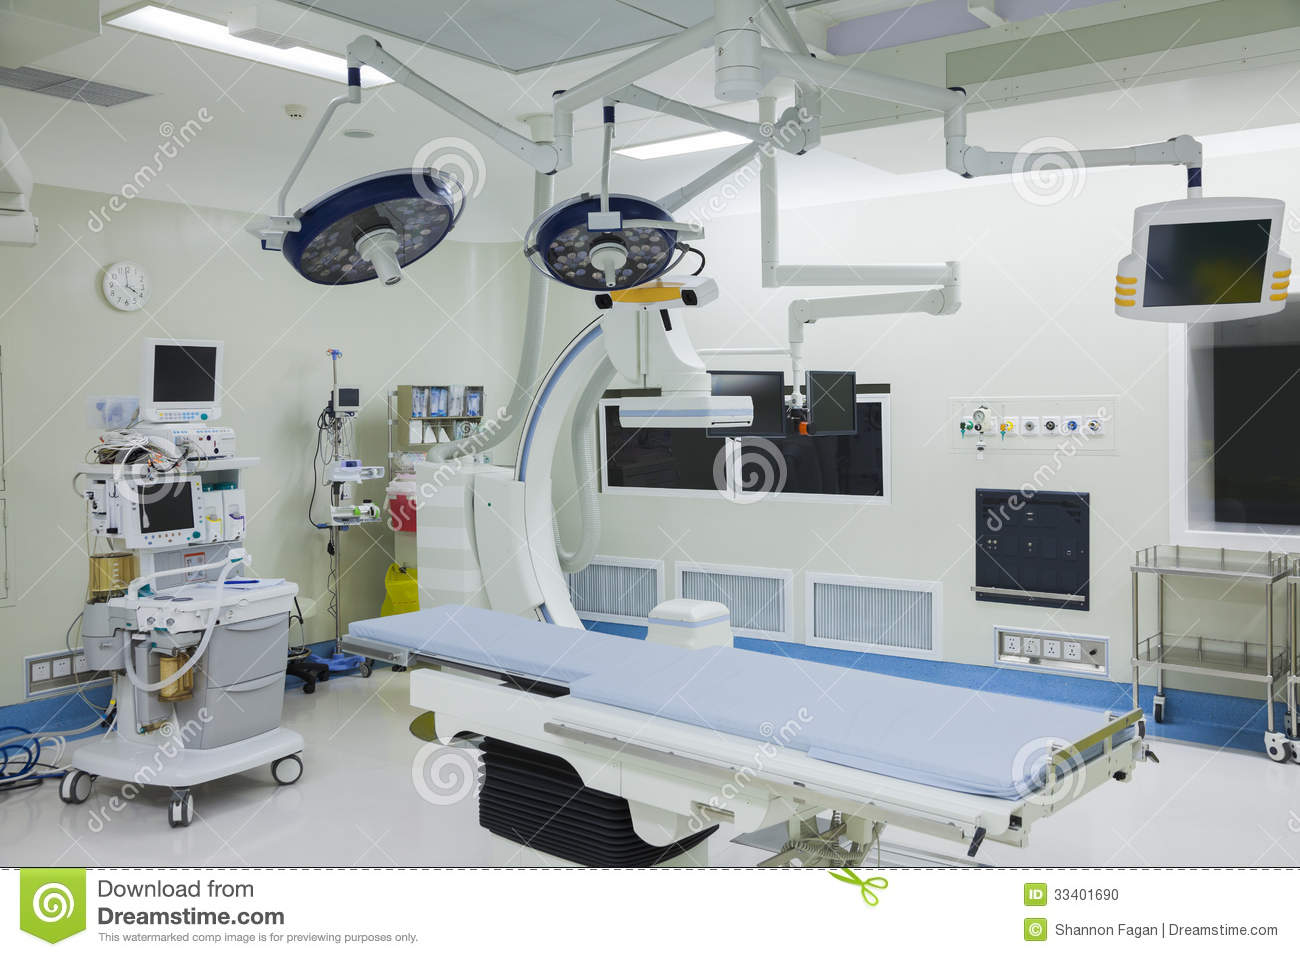 Hospital operating room - Operating Room With Surgical Equipment Hospital Beijing China Stock Photo